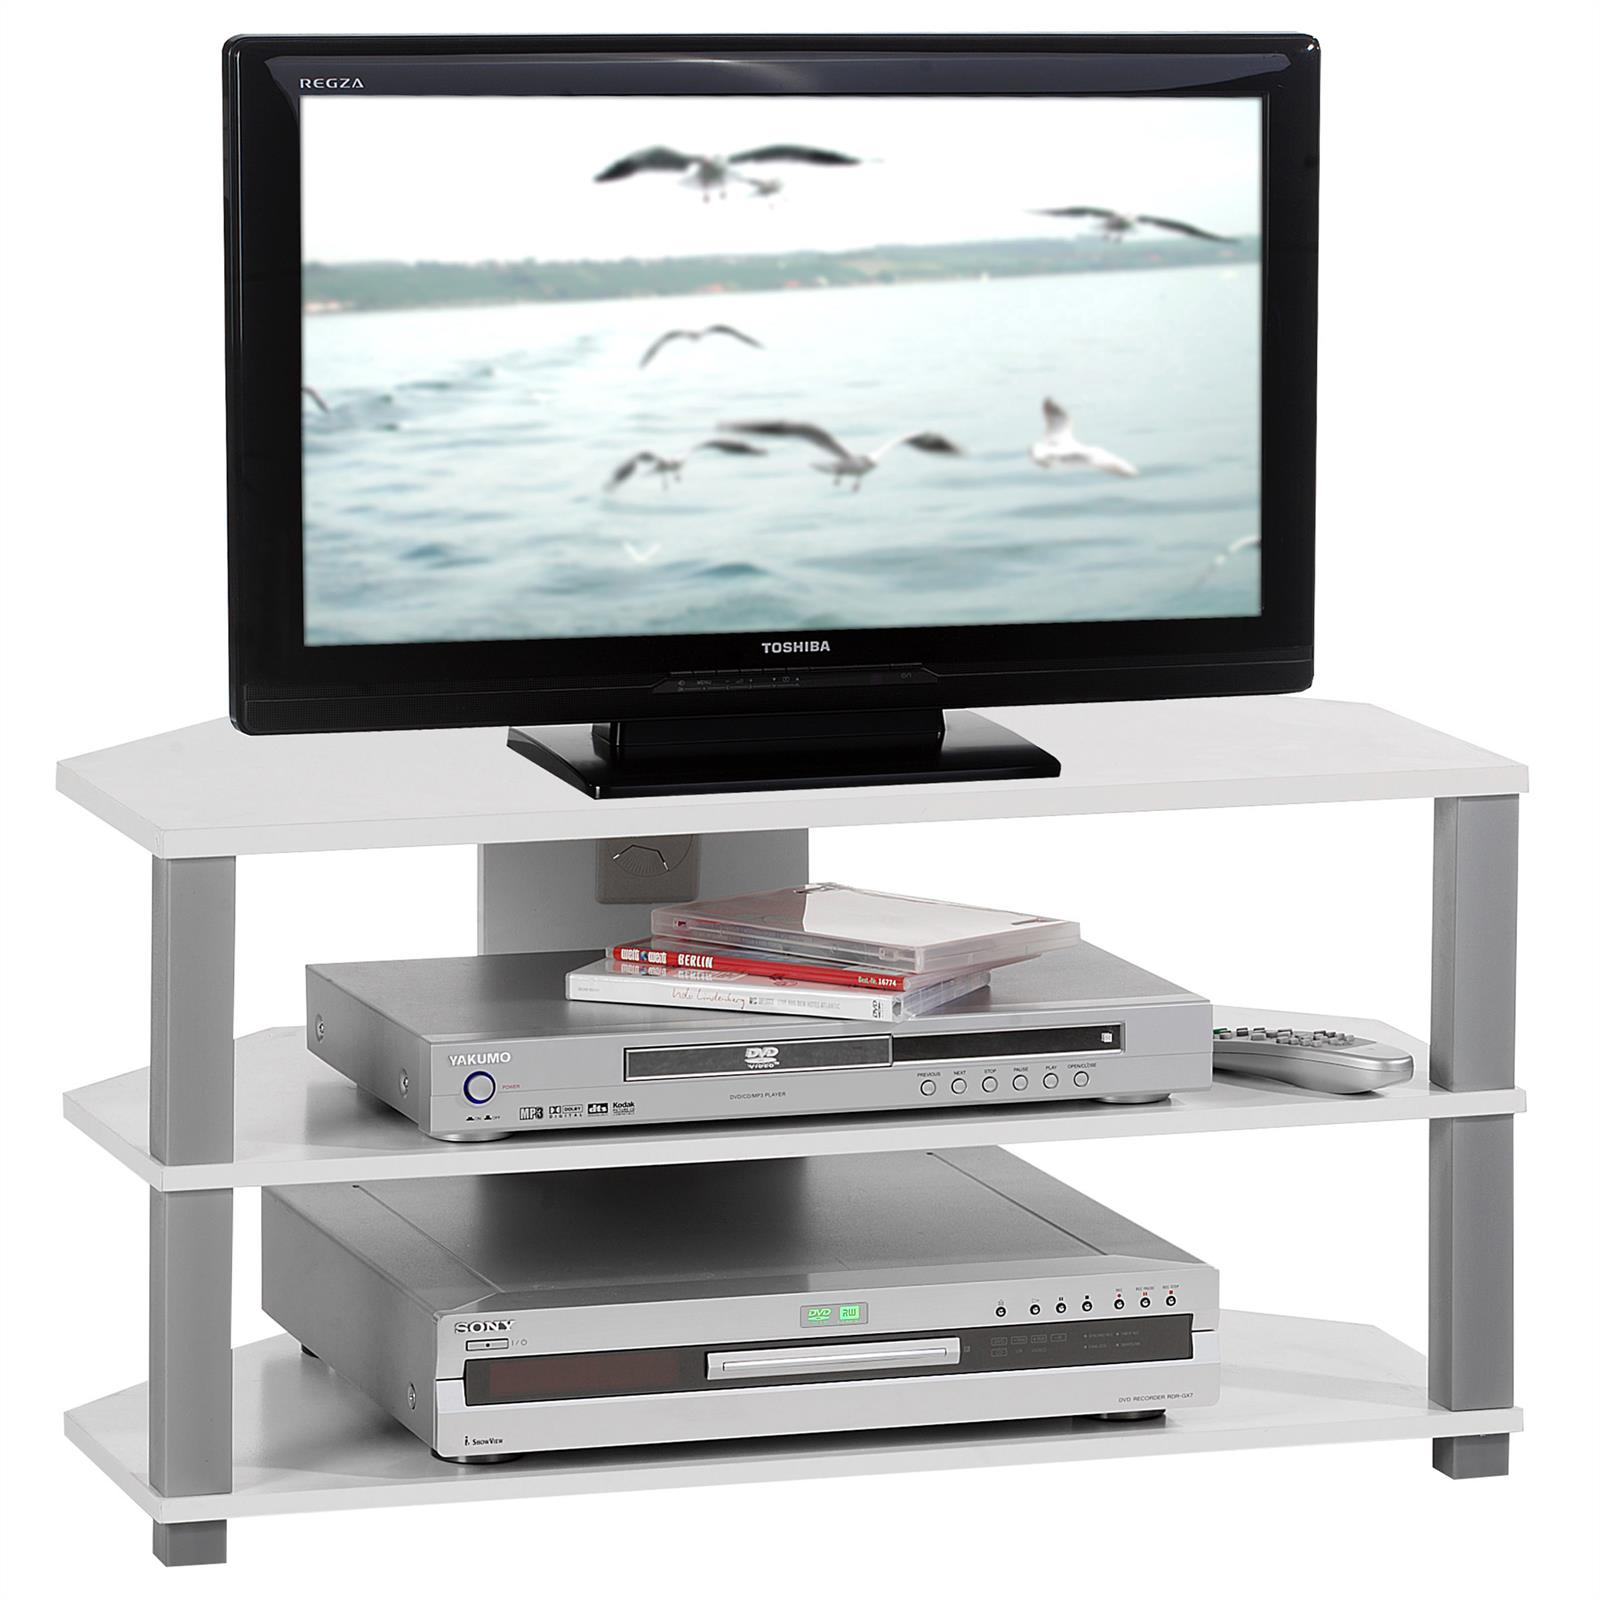 tv rack tisch schrank board unterschrank hifi media m bel design in weiss grau ebay. Black Bedroom Furniture Sets. Home Design Ideas